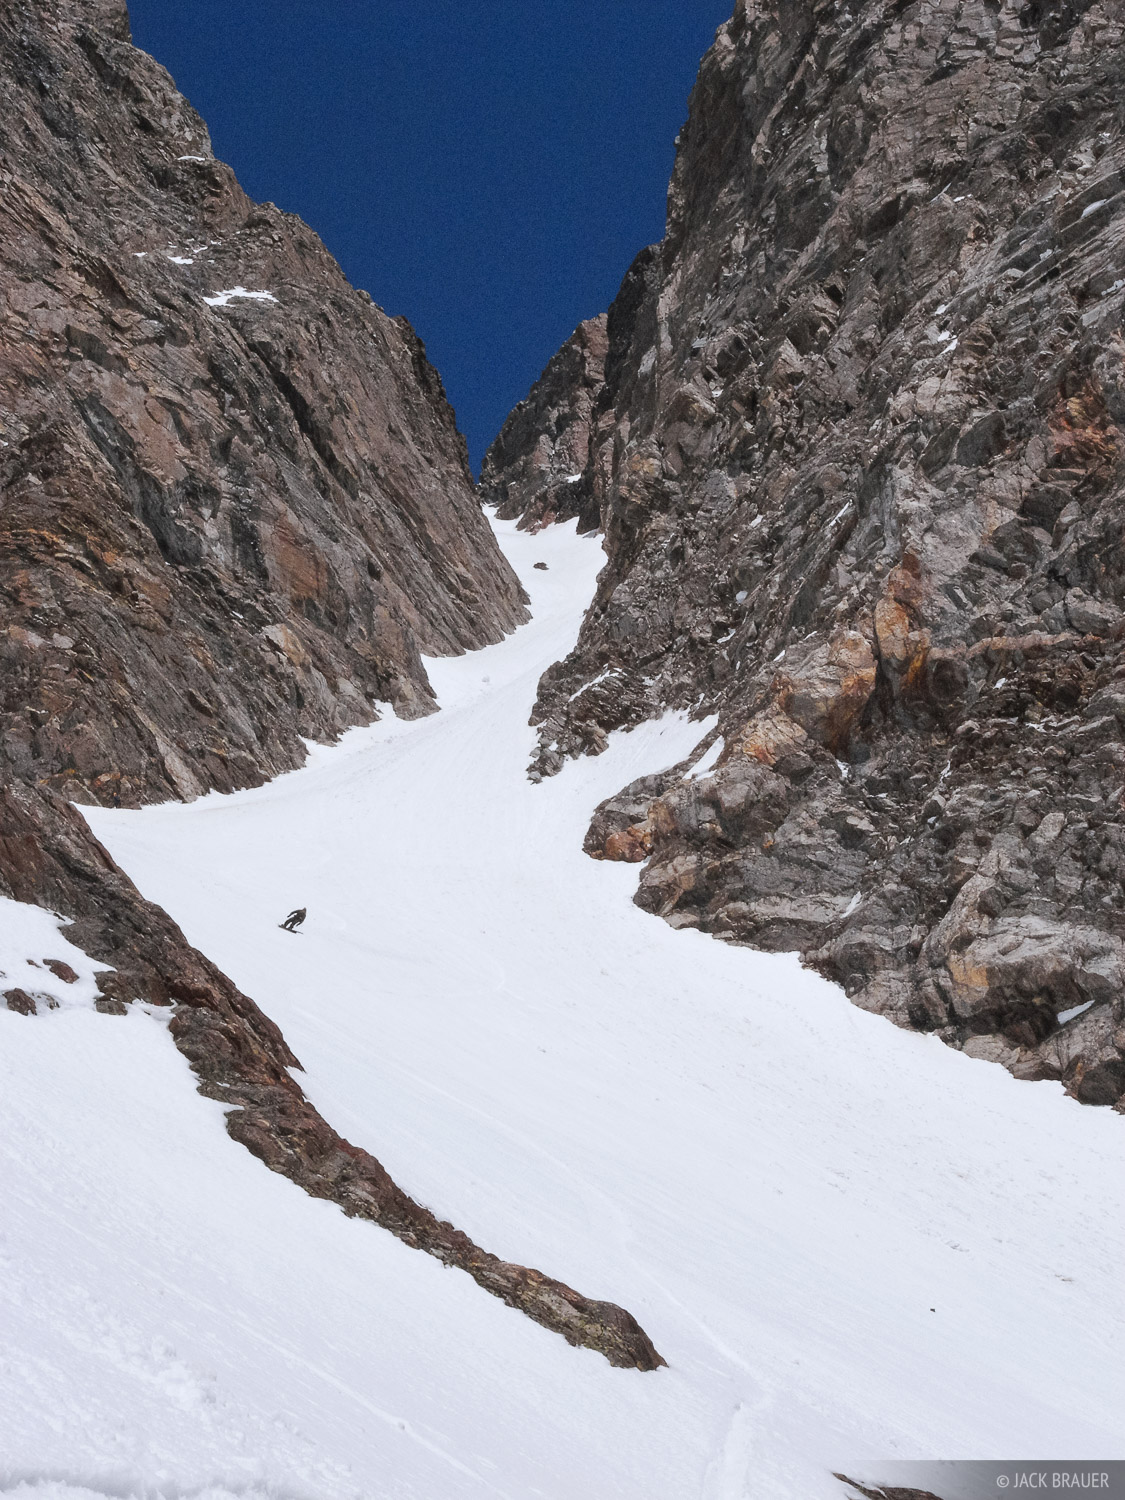 Southwest couloir, Mt. Moran, Tetons, Wyoming, snowboarding, photo